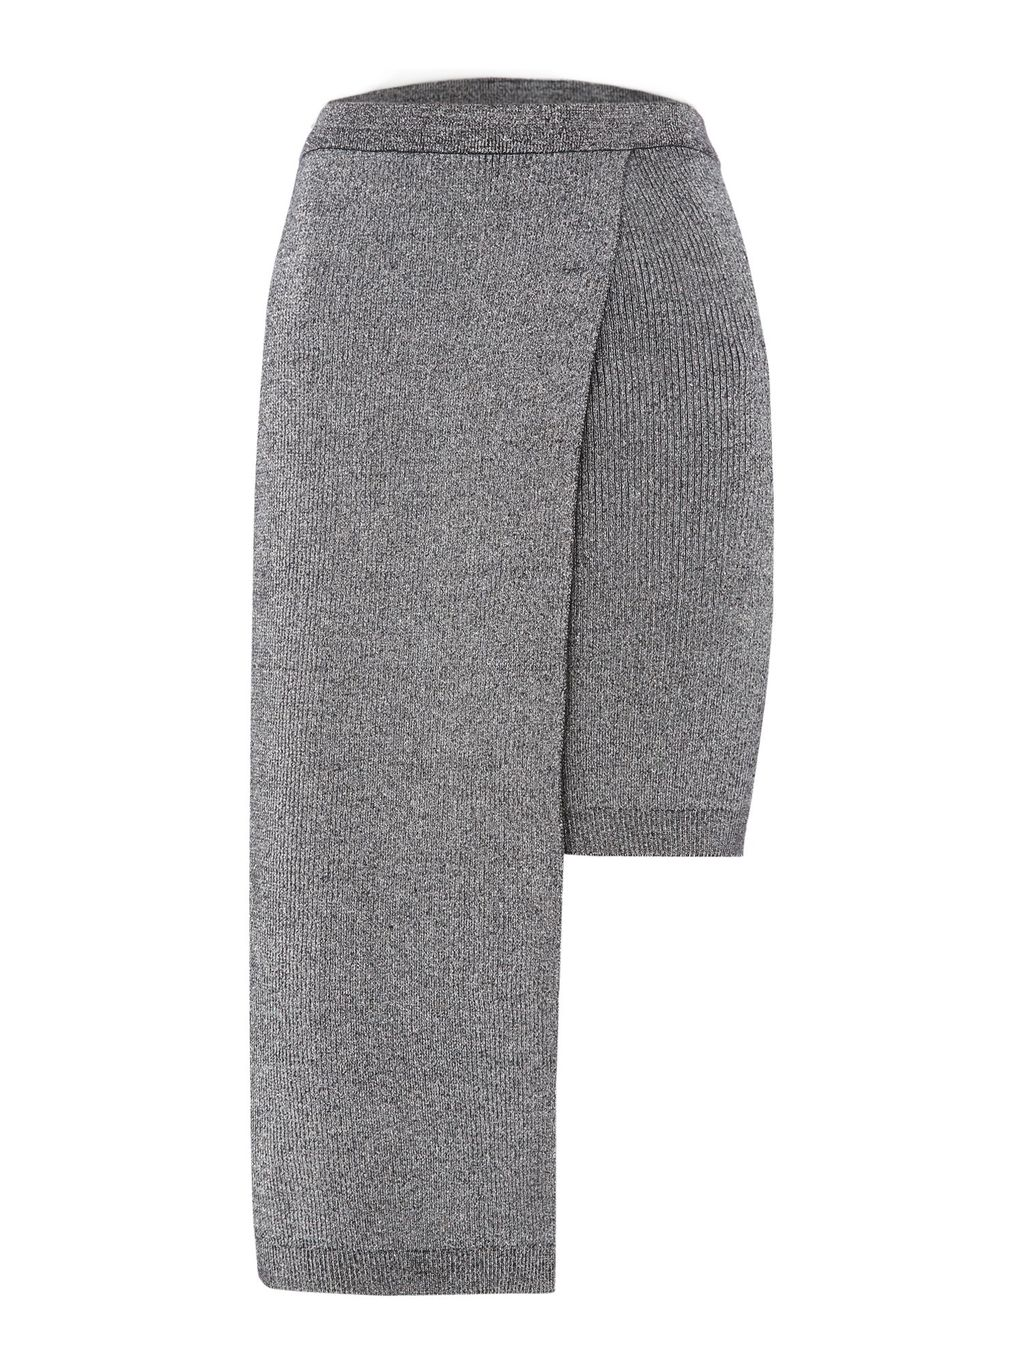 Midi Bodycon Skirt, Silver - pattern: plain; fit: tight; waist: high rise; predominant colour: silver; occasions: evening, creative work; length: just above the knee; style: asymmetric (hem); pattern type: fabric; texture group: woven light midweight; fibres: viscose/rayon - mix; season: a/w 2016